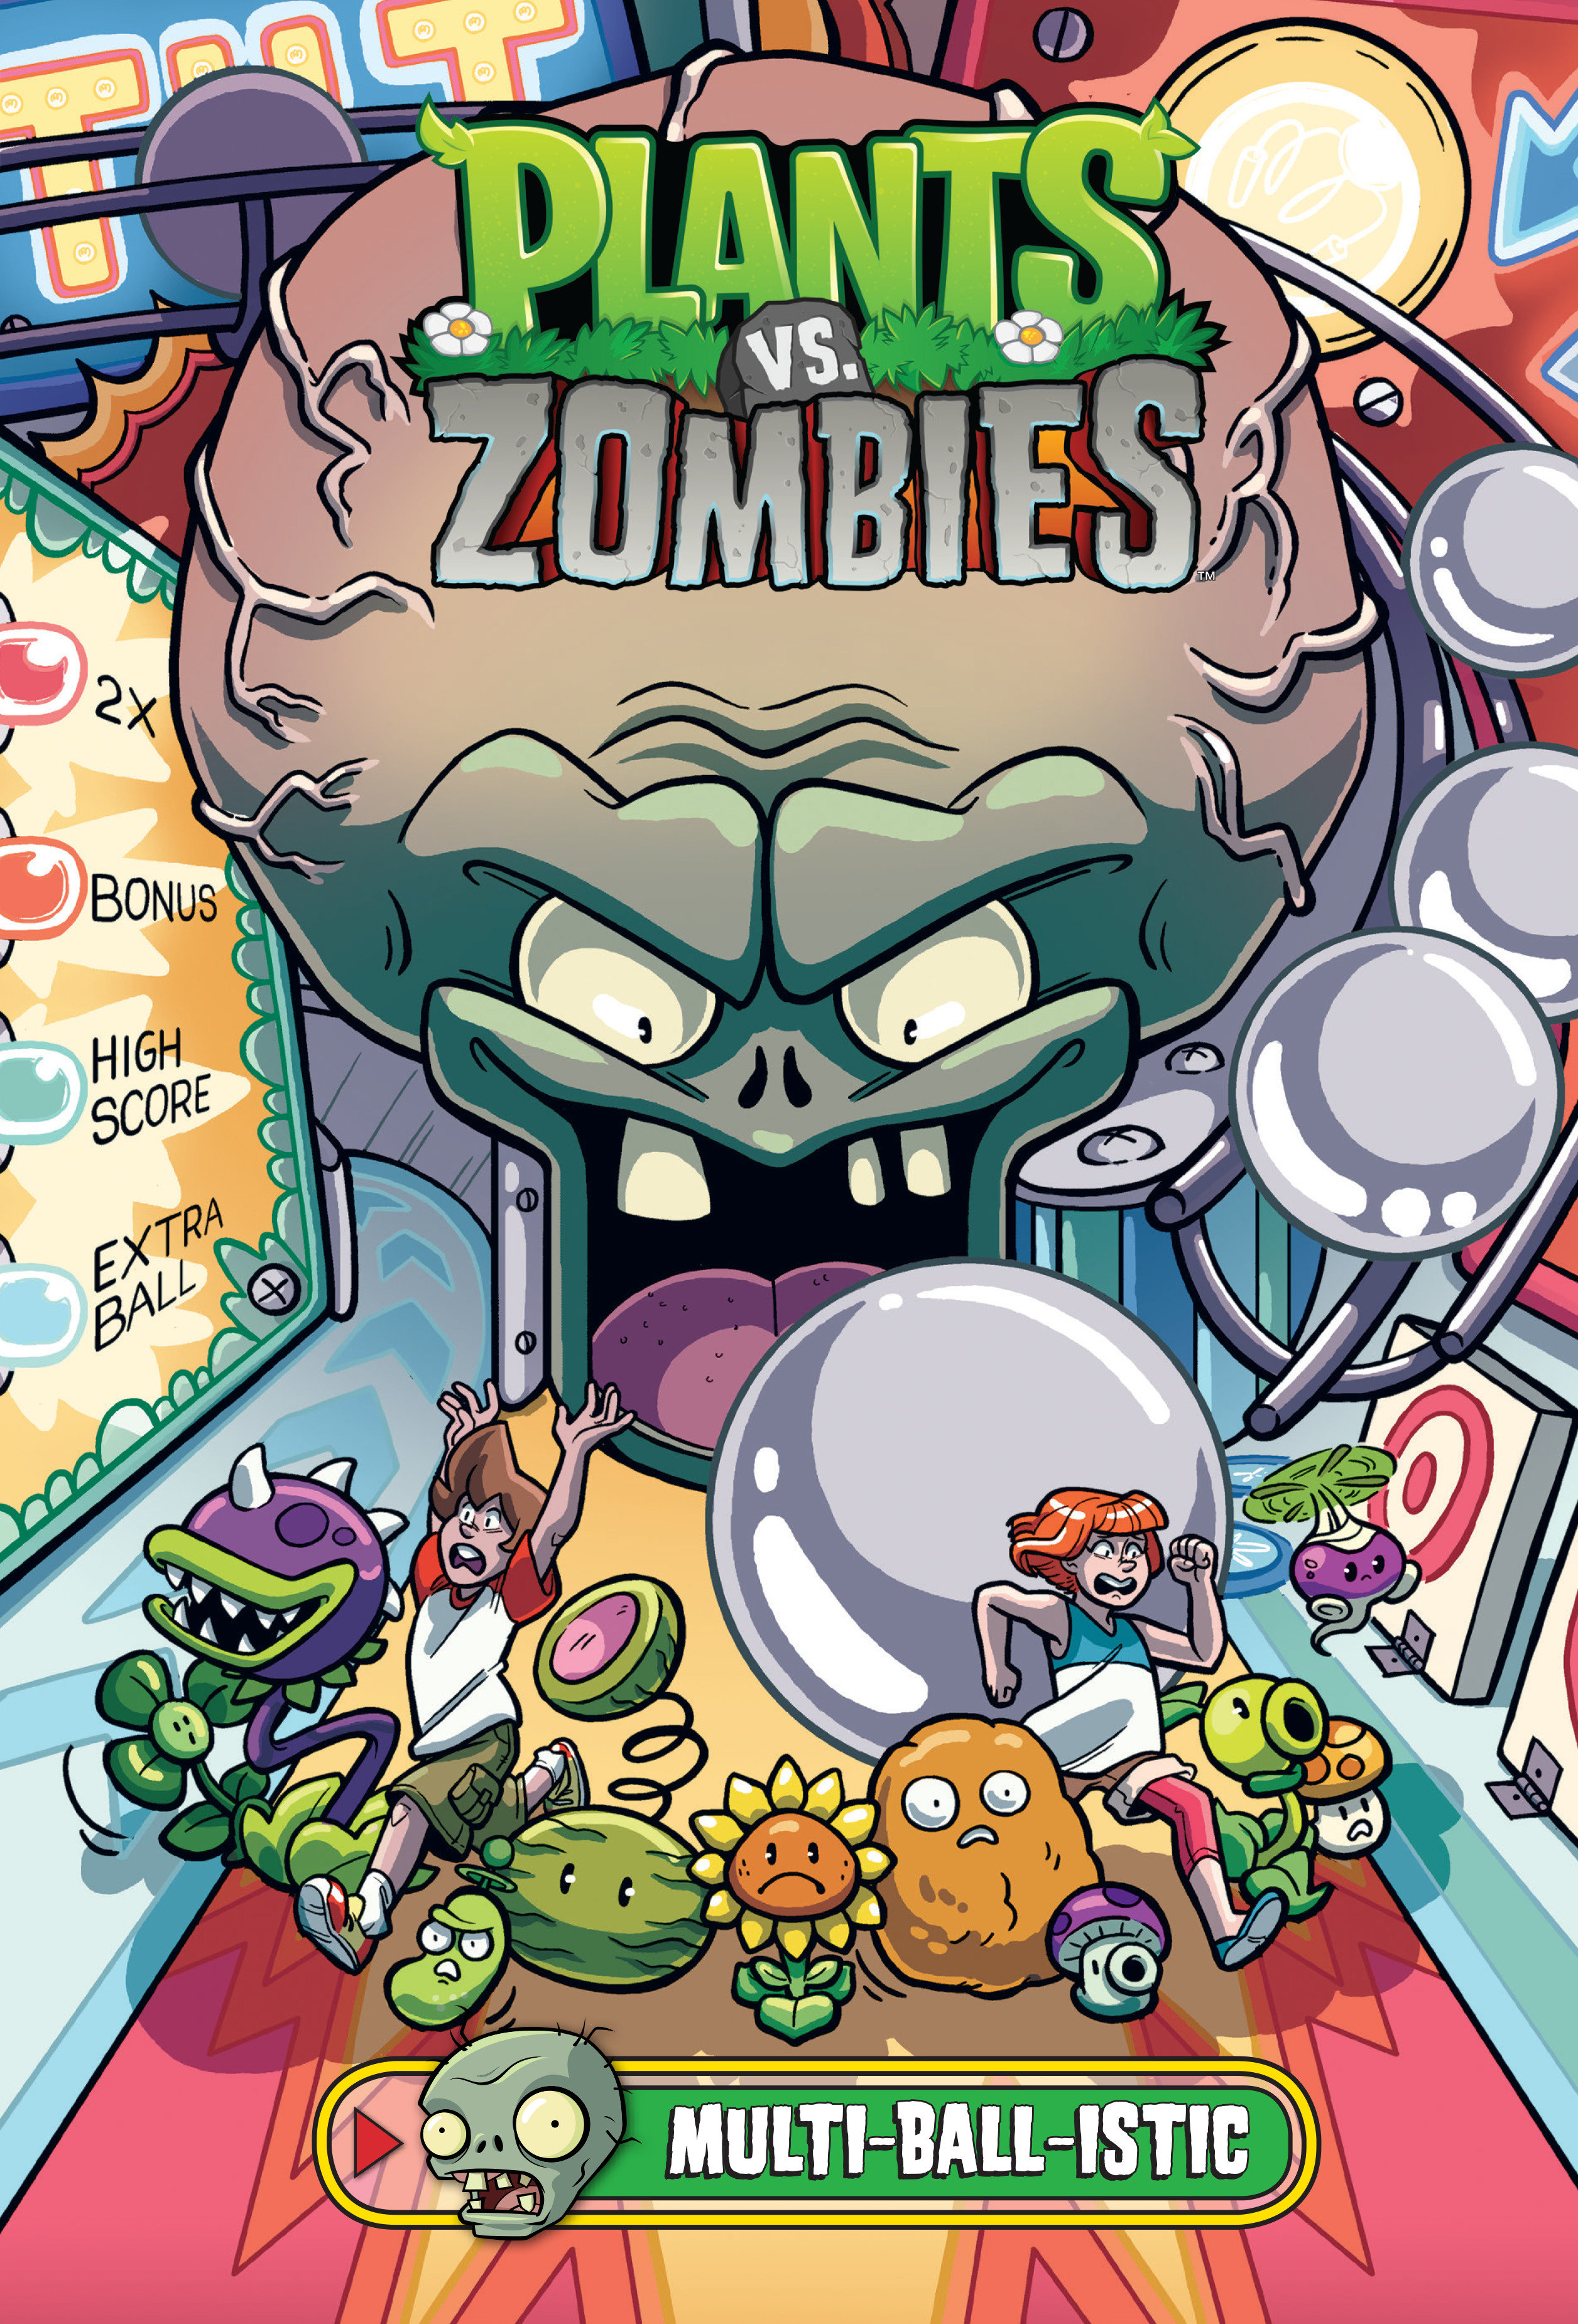 Cover Image of Plants vs. Zombies Volume 17: Multi-ball-istic